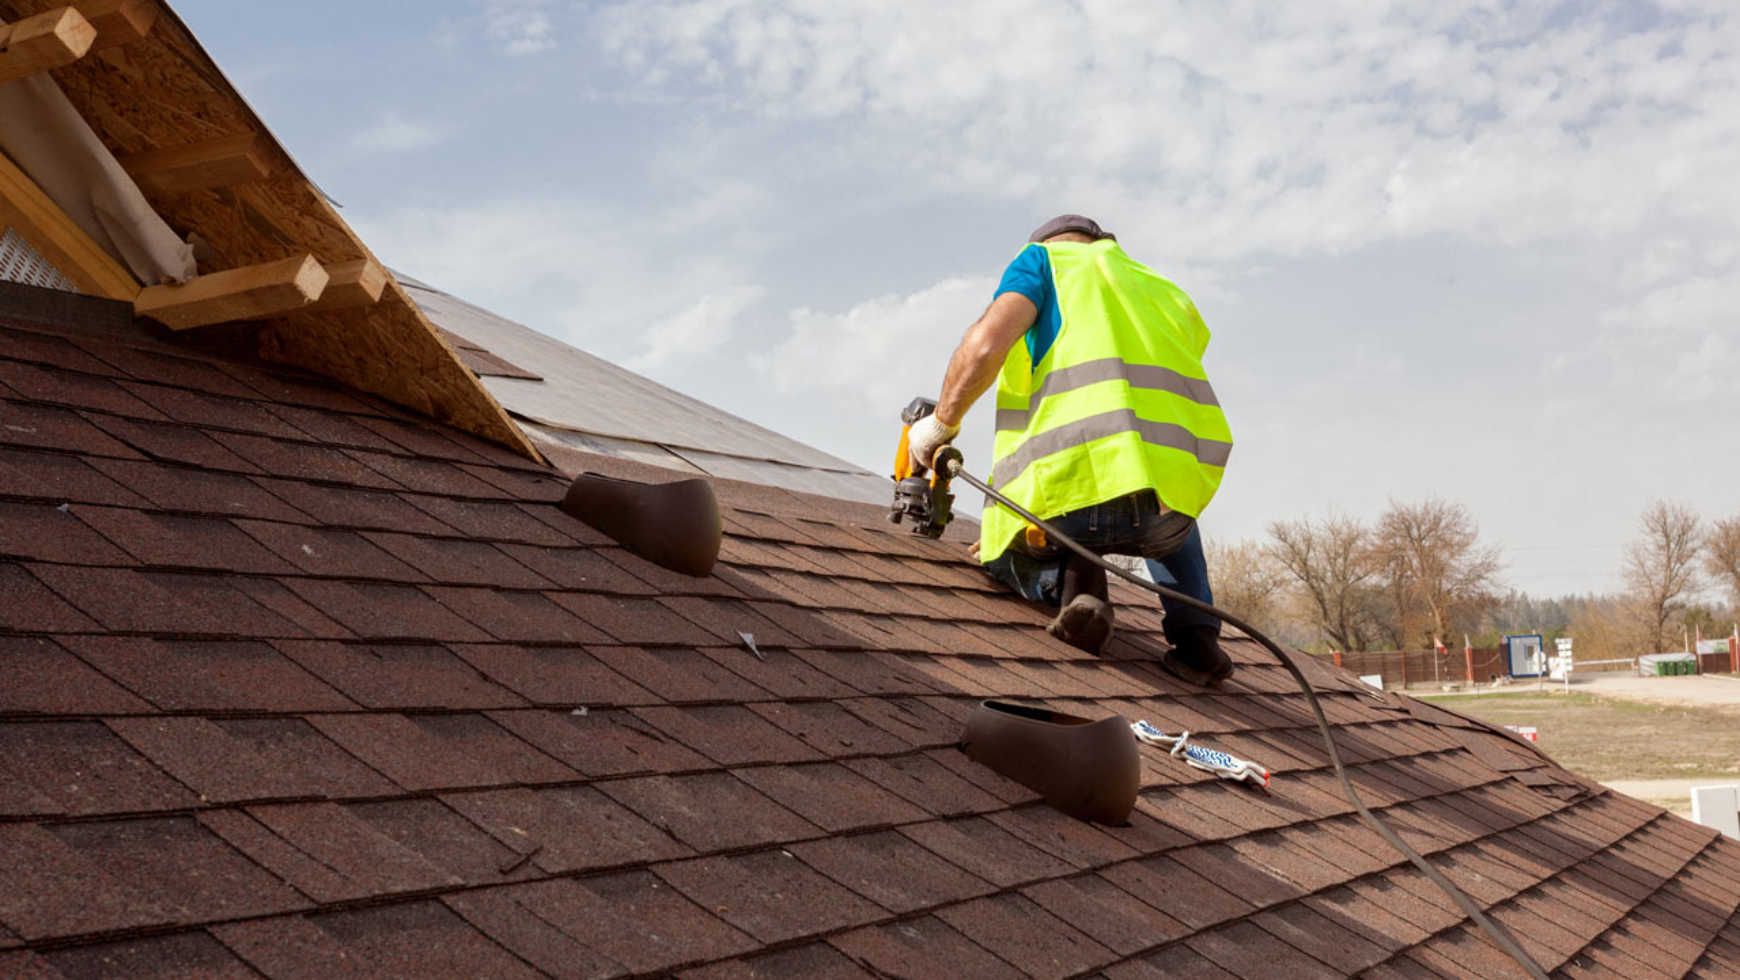 Roofing Tools: The 13 Most Commonly Used